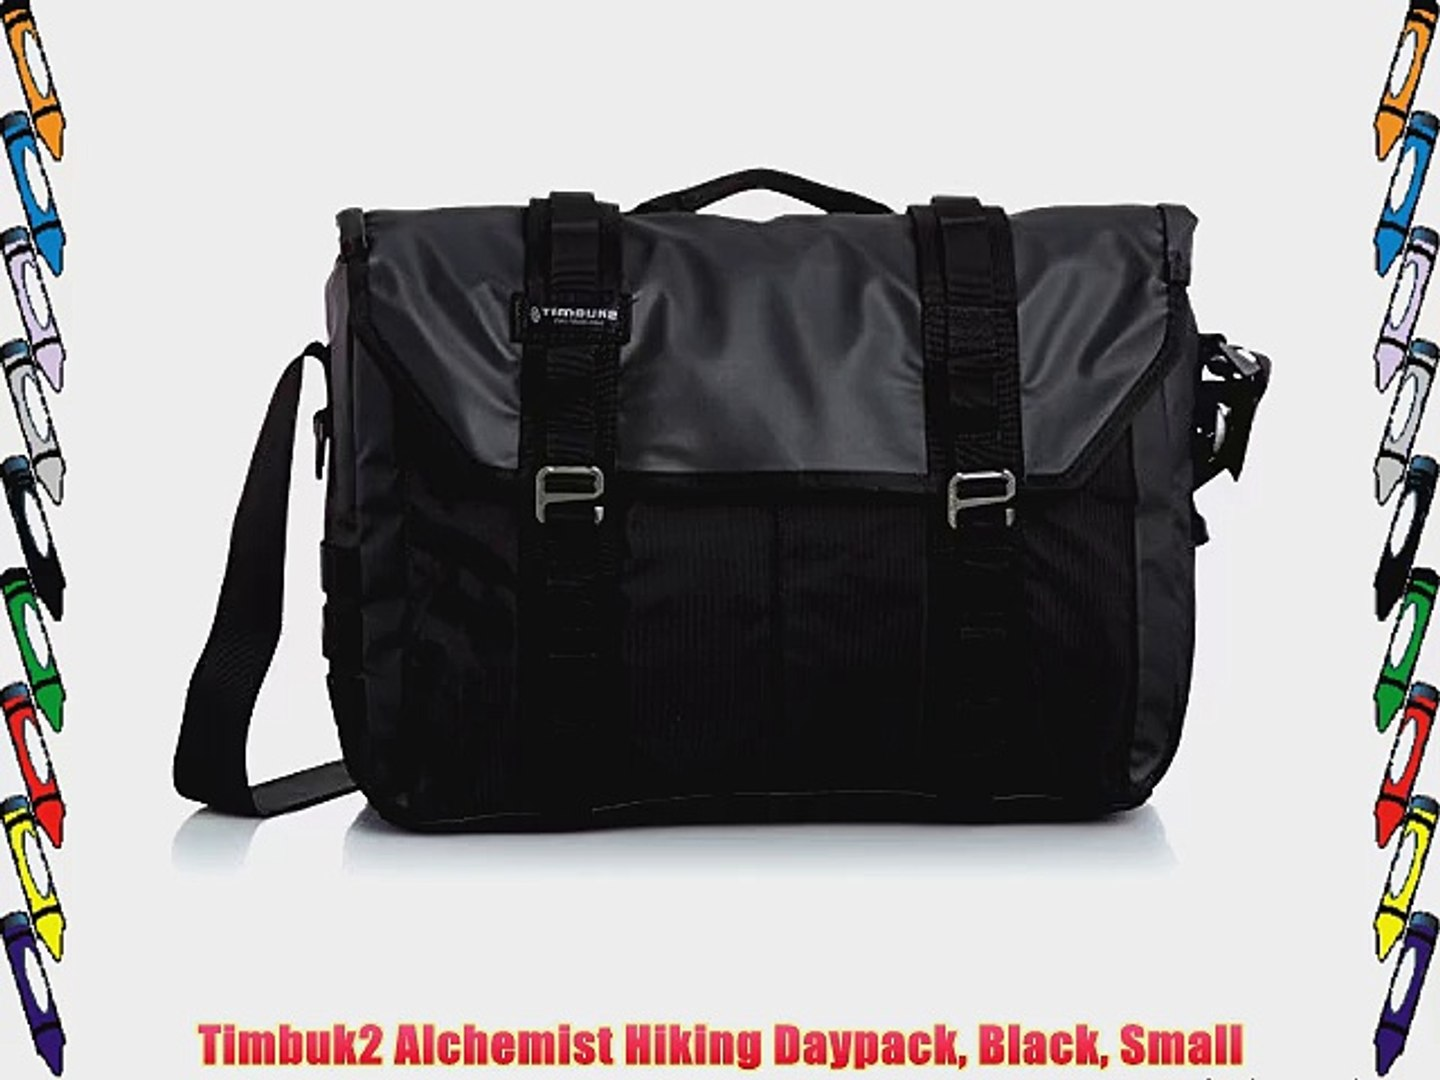 60e3af2a67cd Timbuk2 Alchemist Hiking Daypack Black Small - video dailymotion